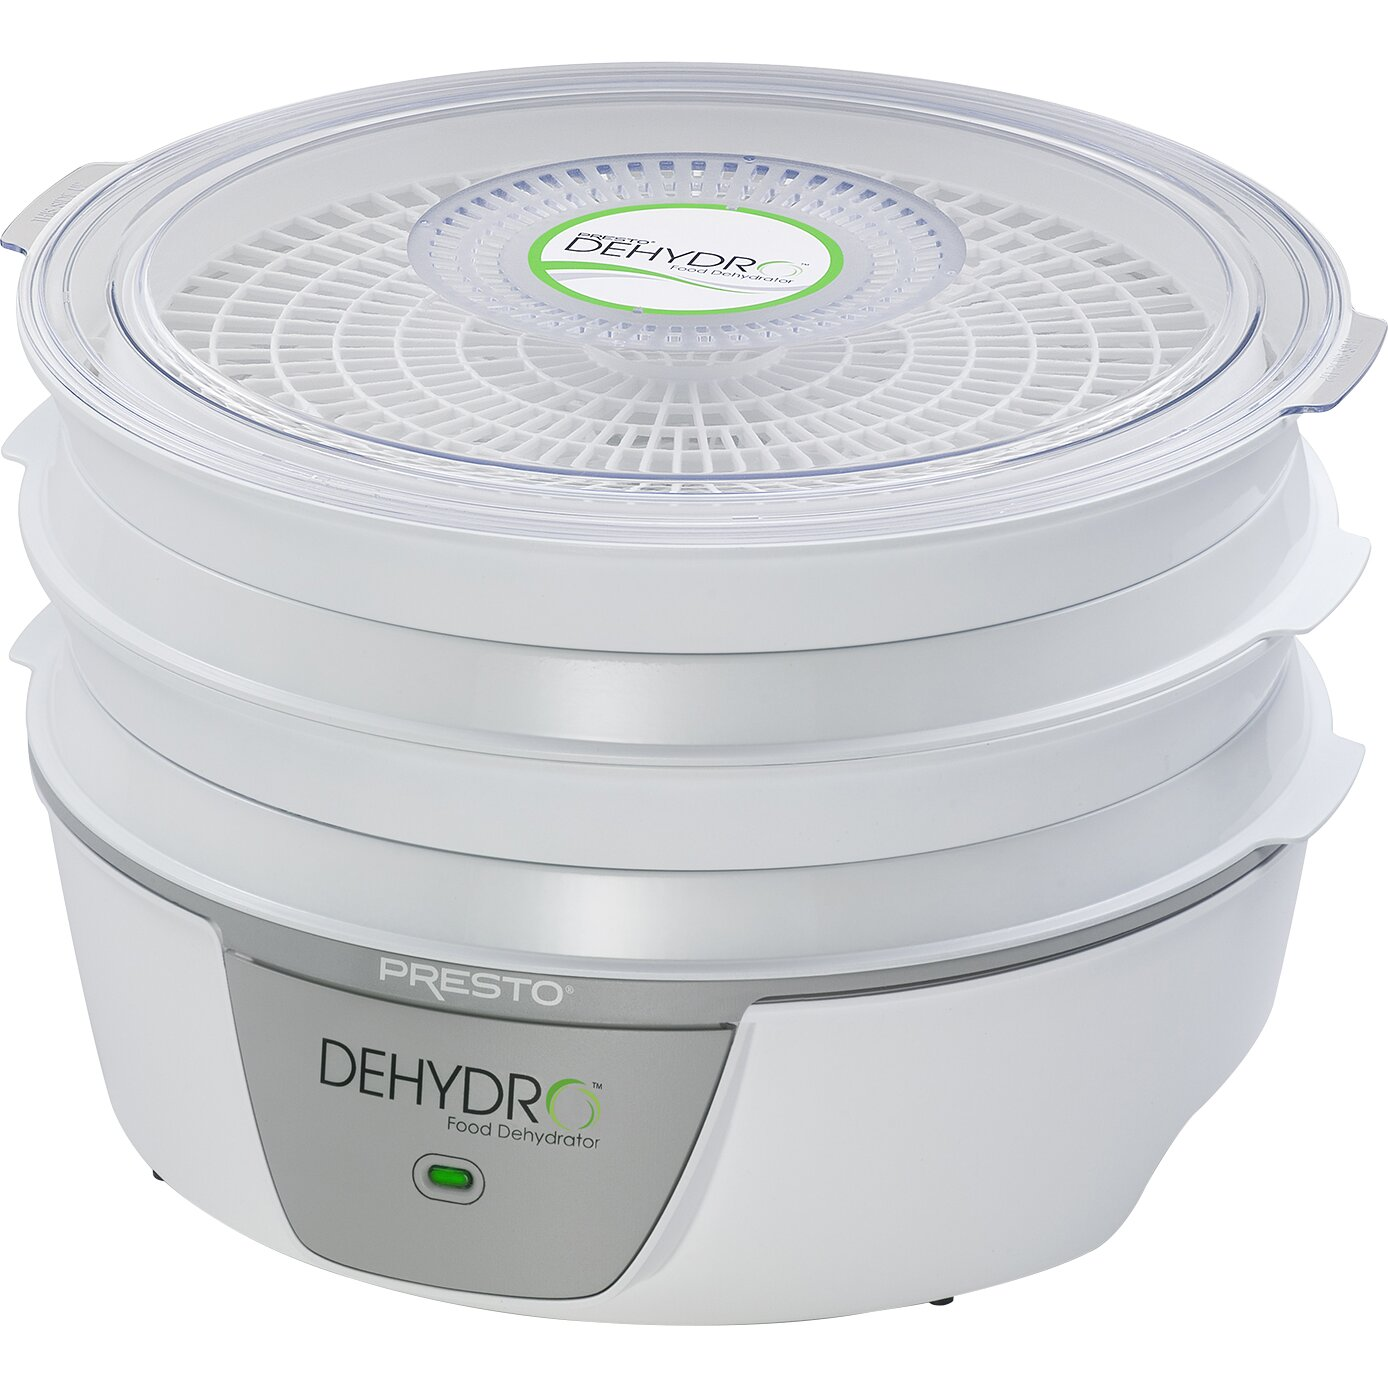 Presto Dehydro Electric Food Dehydrator Reviews